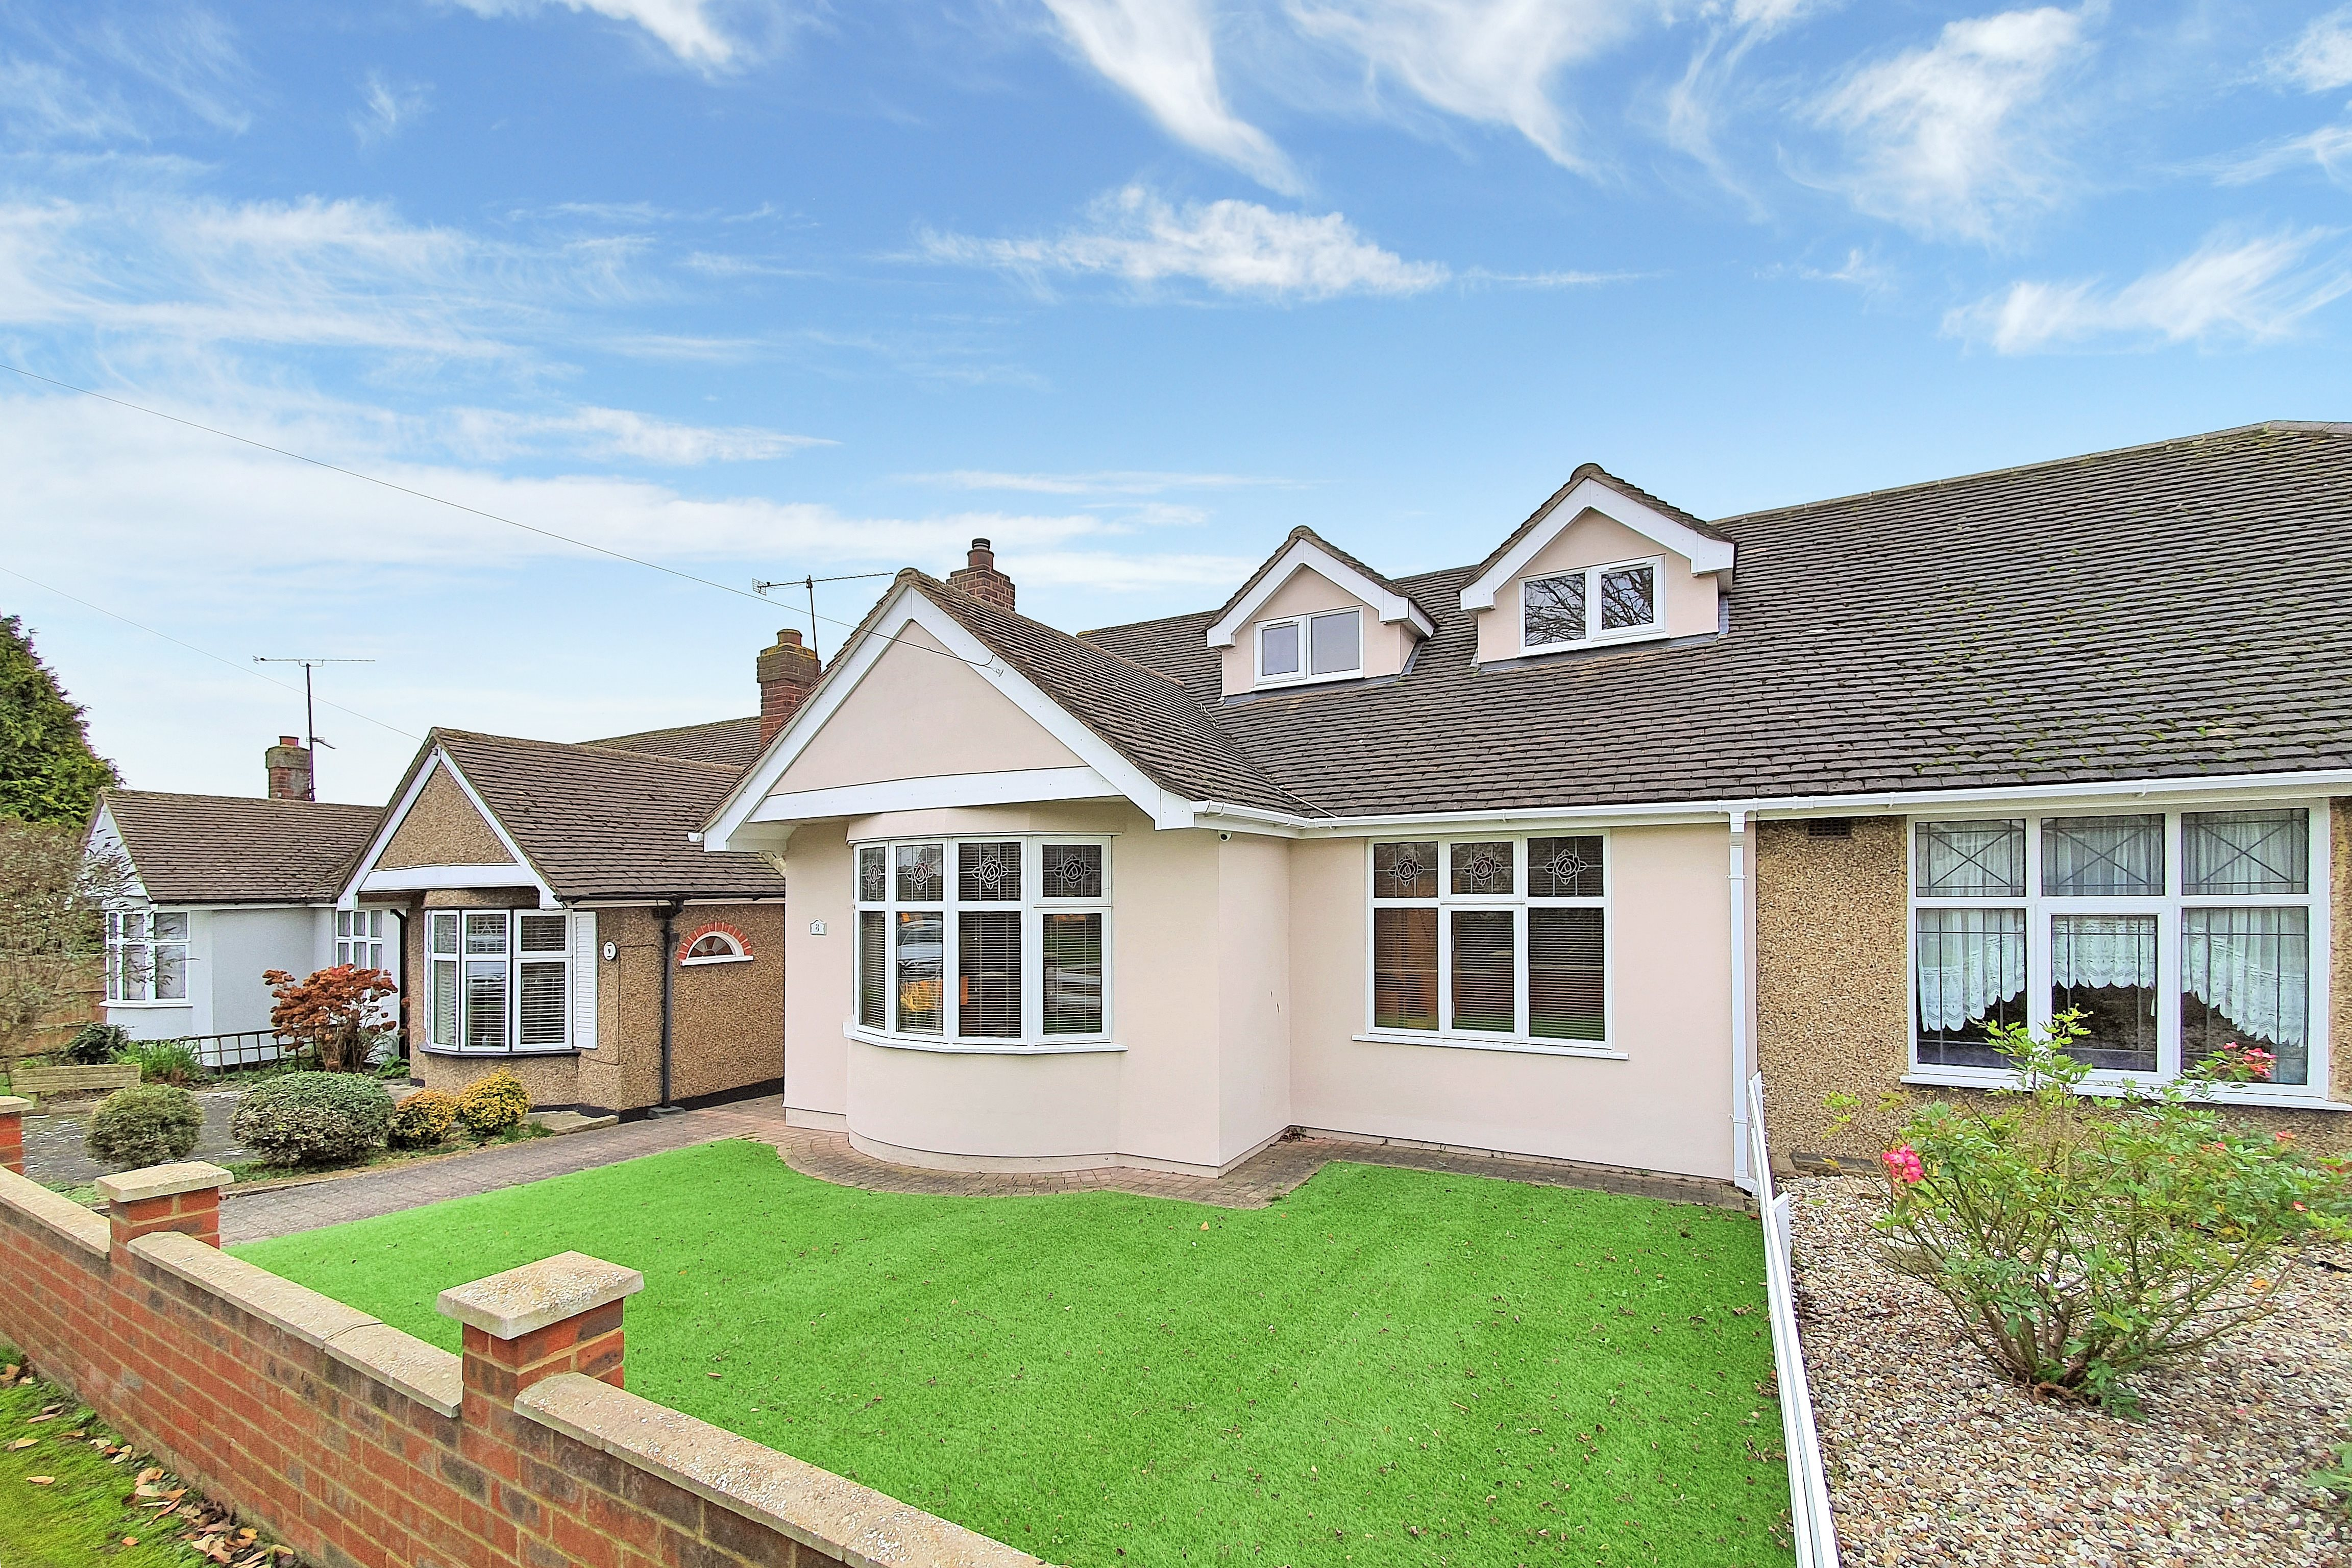 3 bed house for sale in Thames Close , Rayleigh, SS6